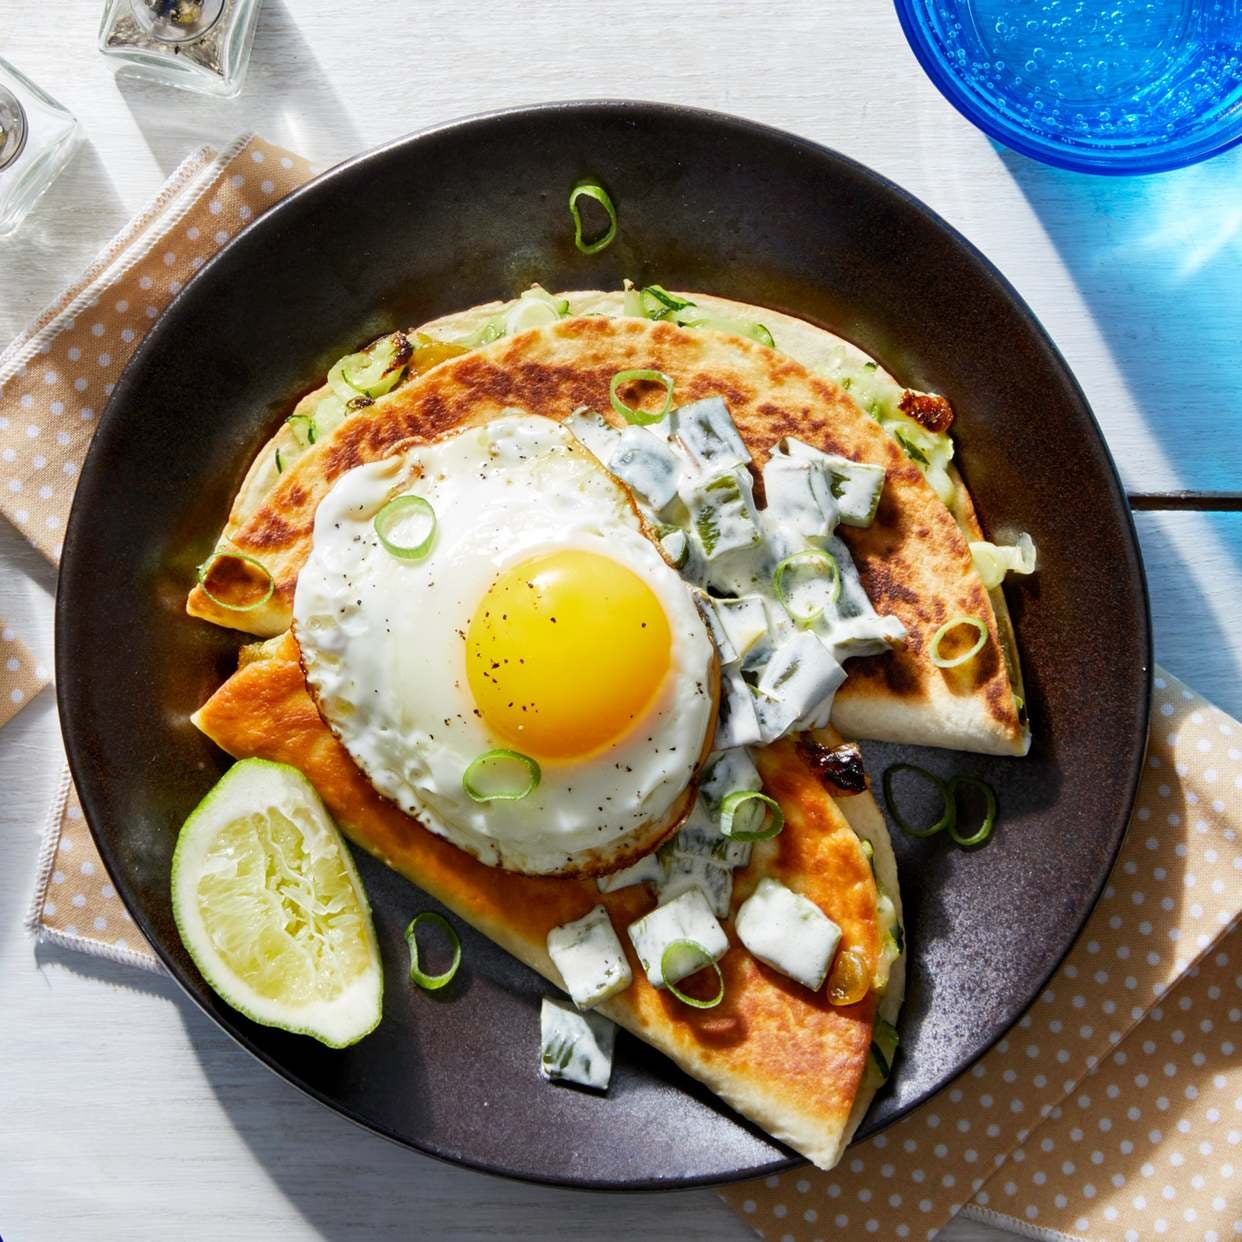 Spicy Zucchini Quesadillas with Poblano Pepper & Fried Eggs